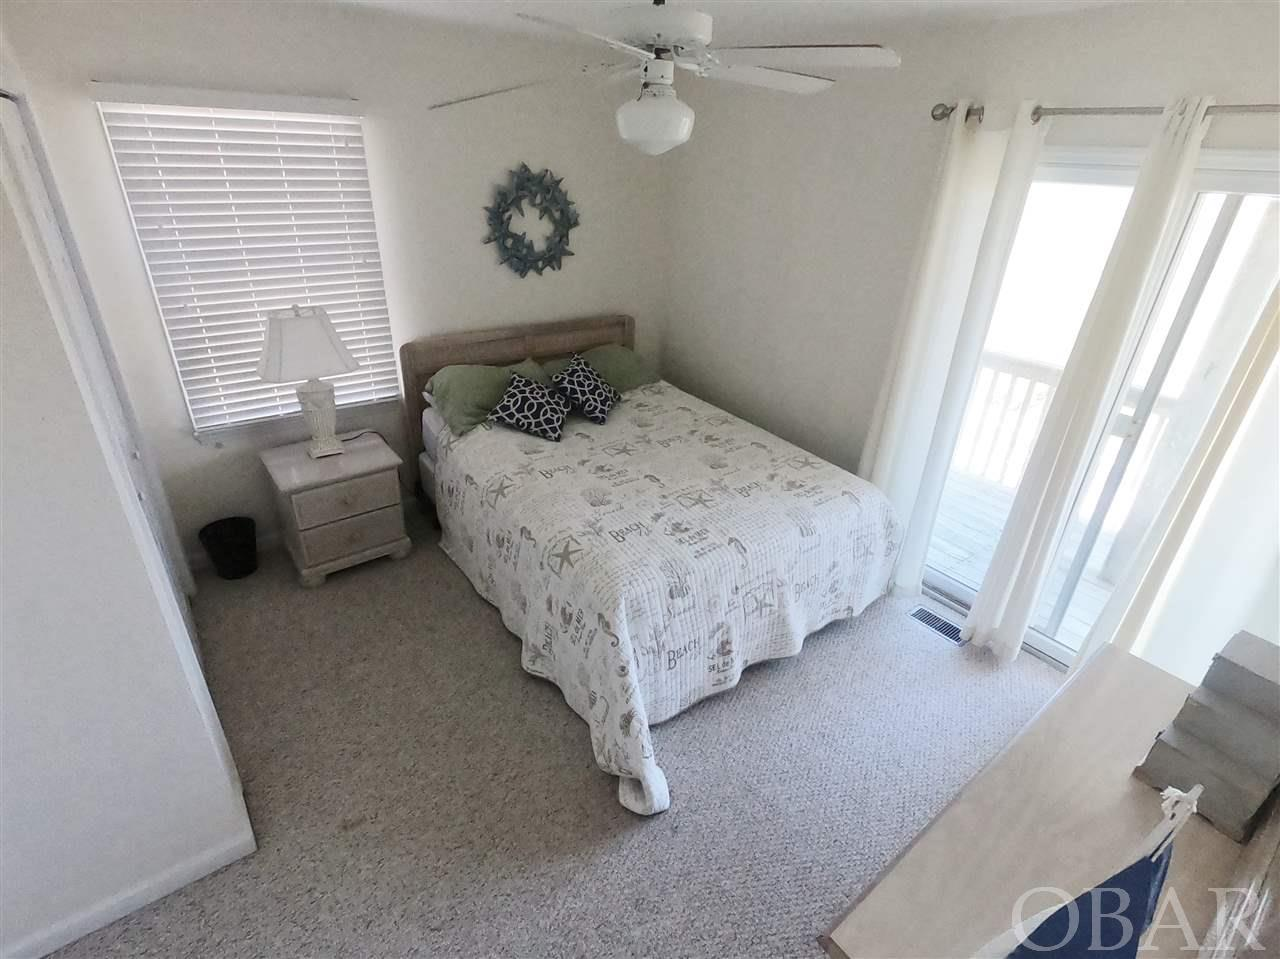 2307 Oneto Lane, Nags Head, NC 27959, 5 Bedrooms Bedrooms, ,5 BathroomsBathrooms,Residential,For sale,Oneto Lane,106464